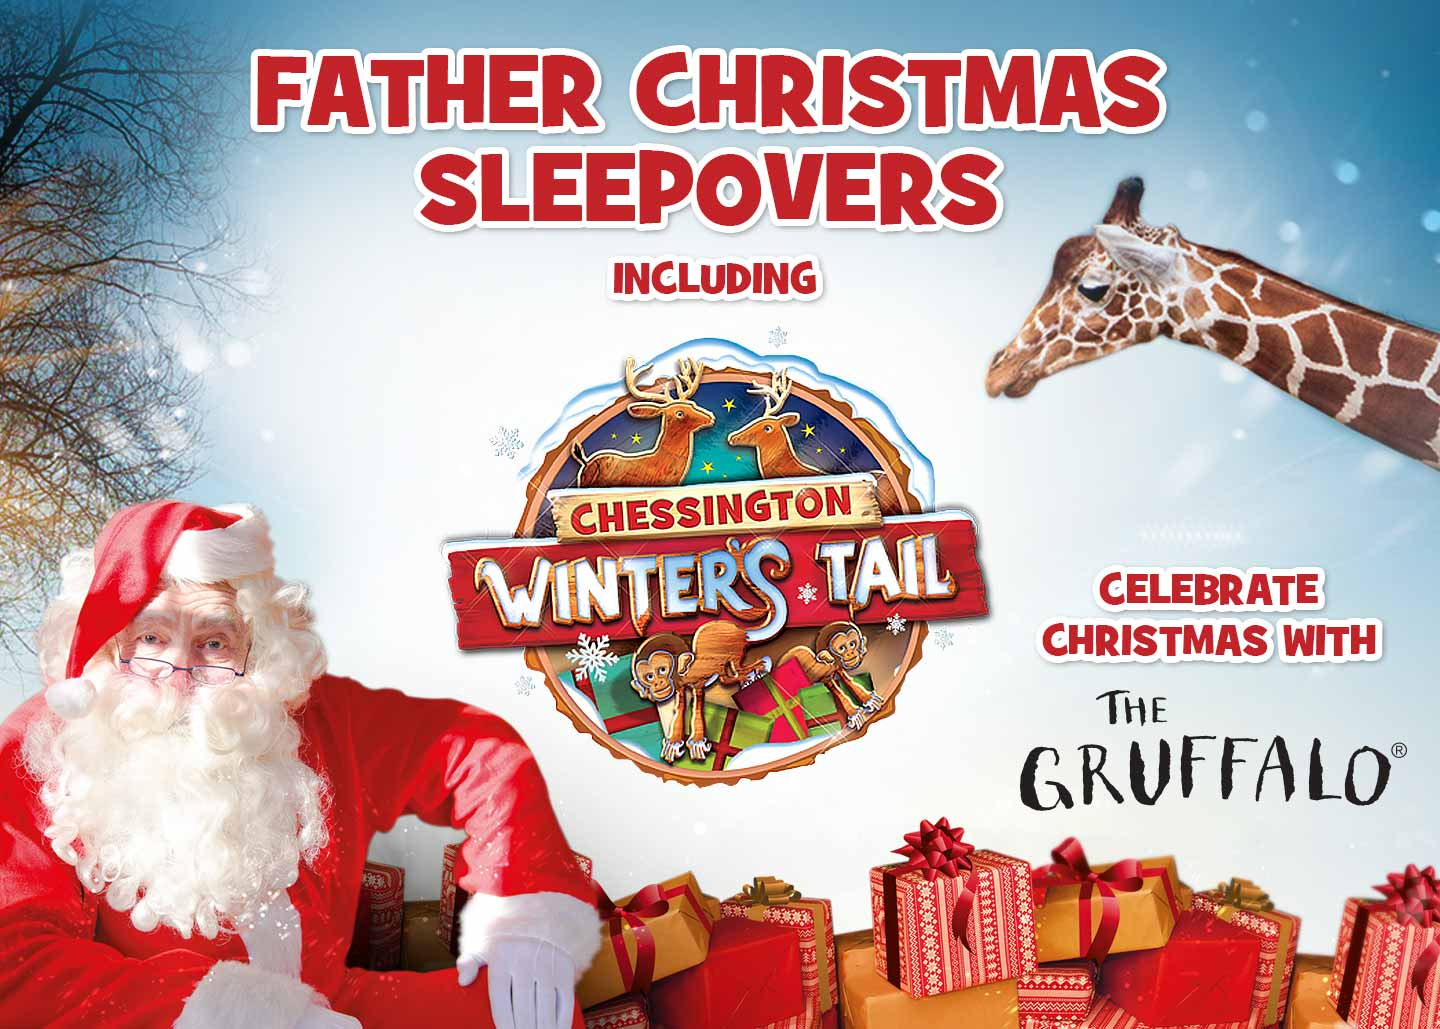 Father Chrismtas Sleepovers at Chessington World of Adventures Resort